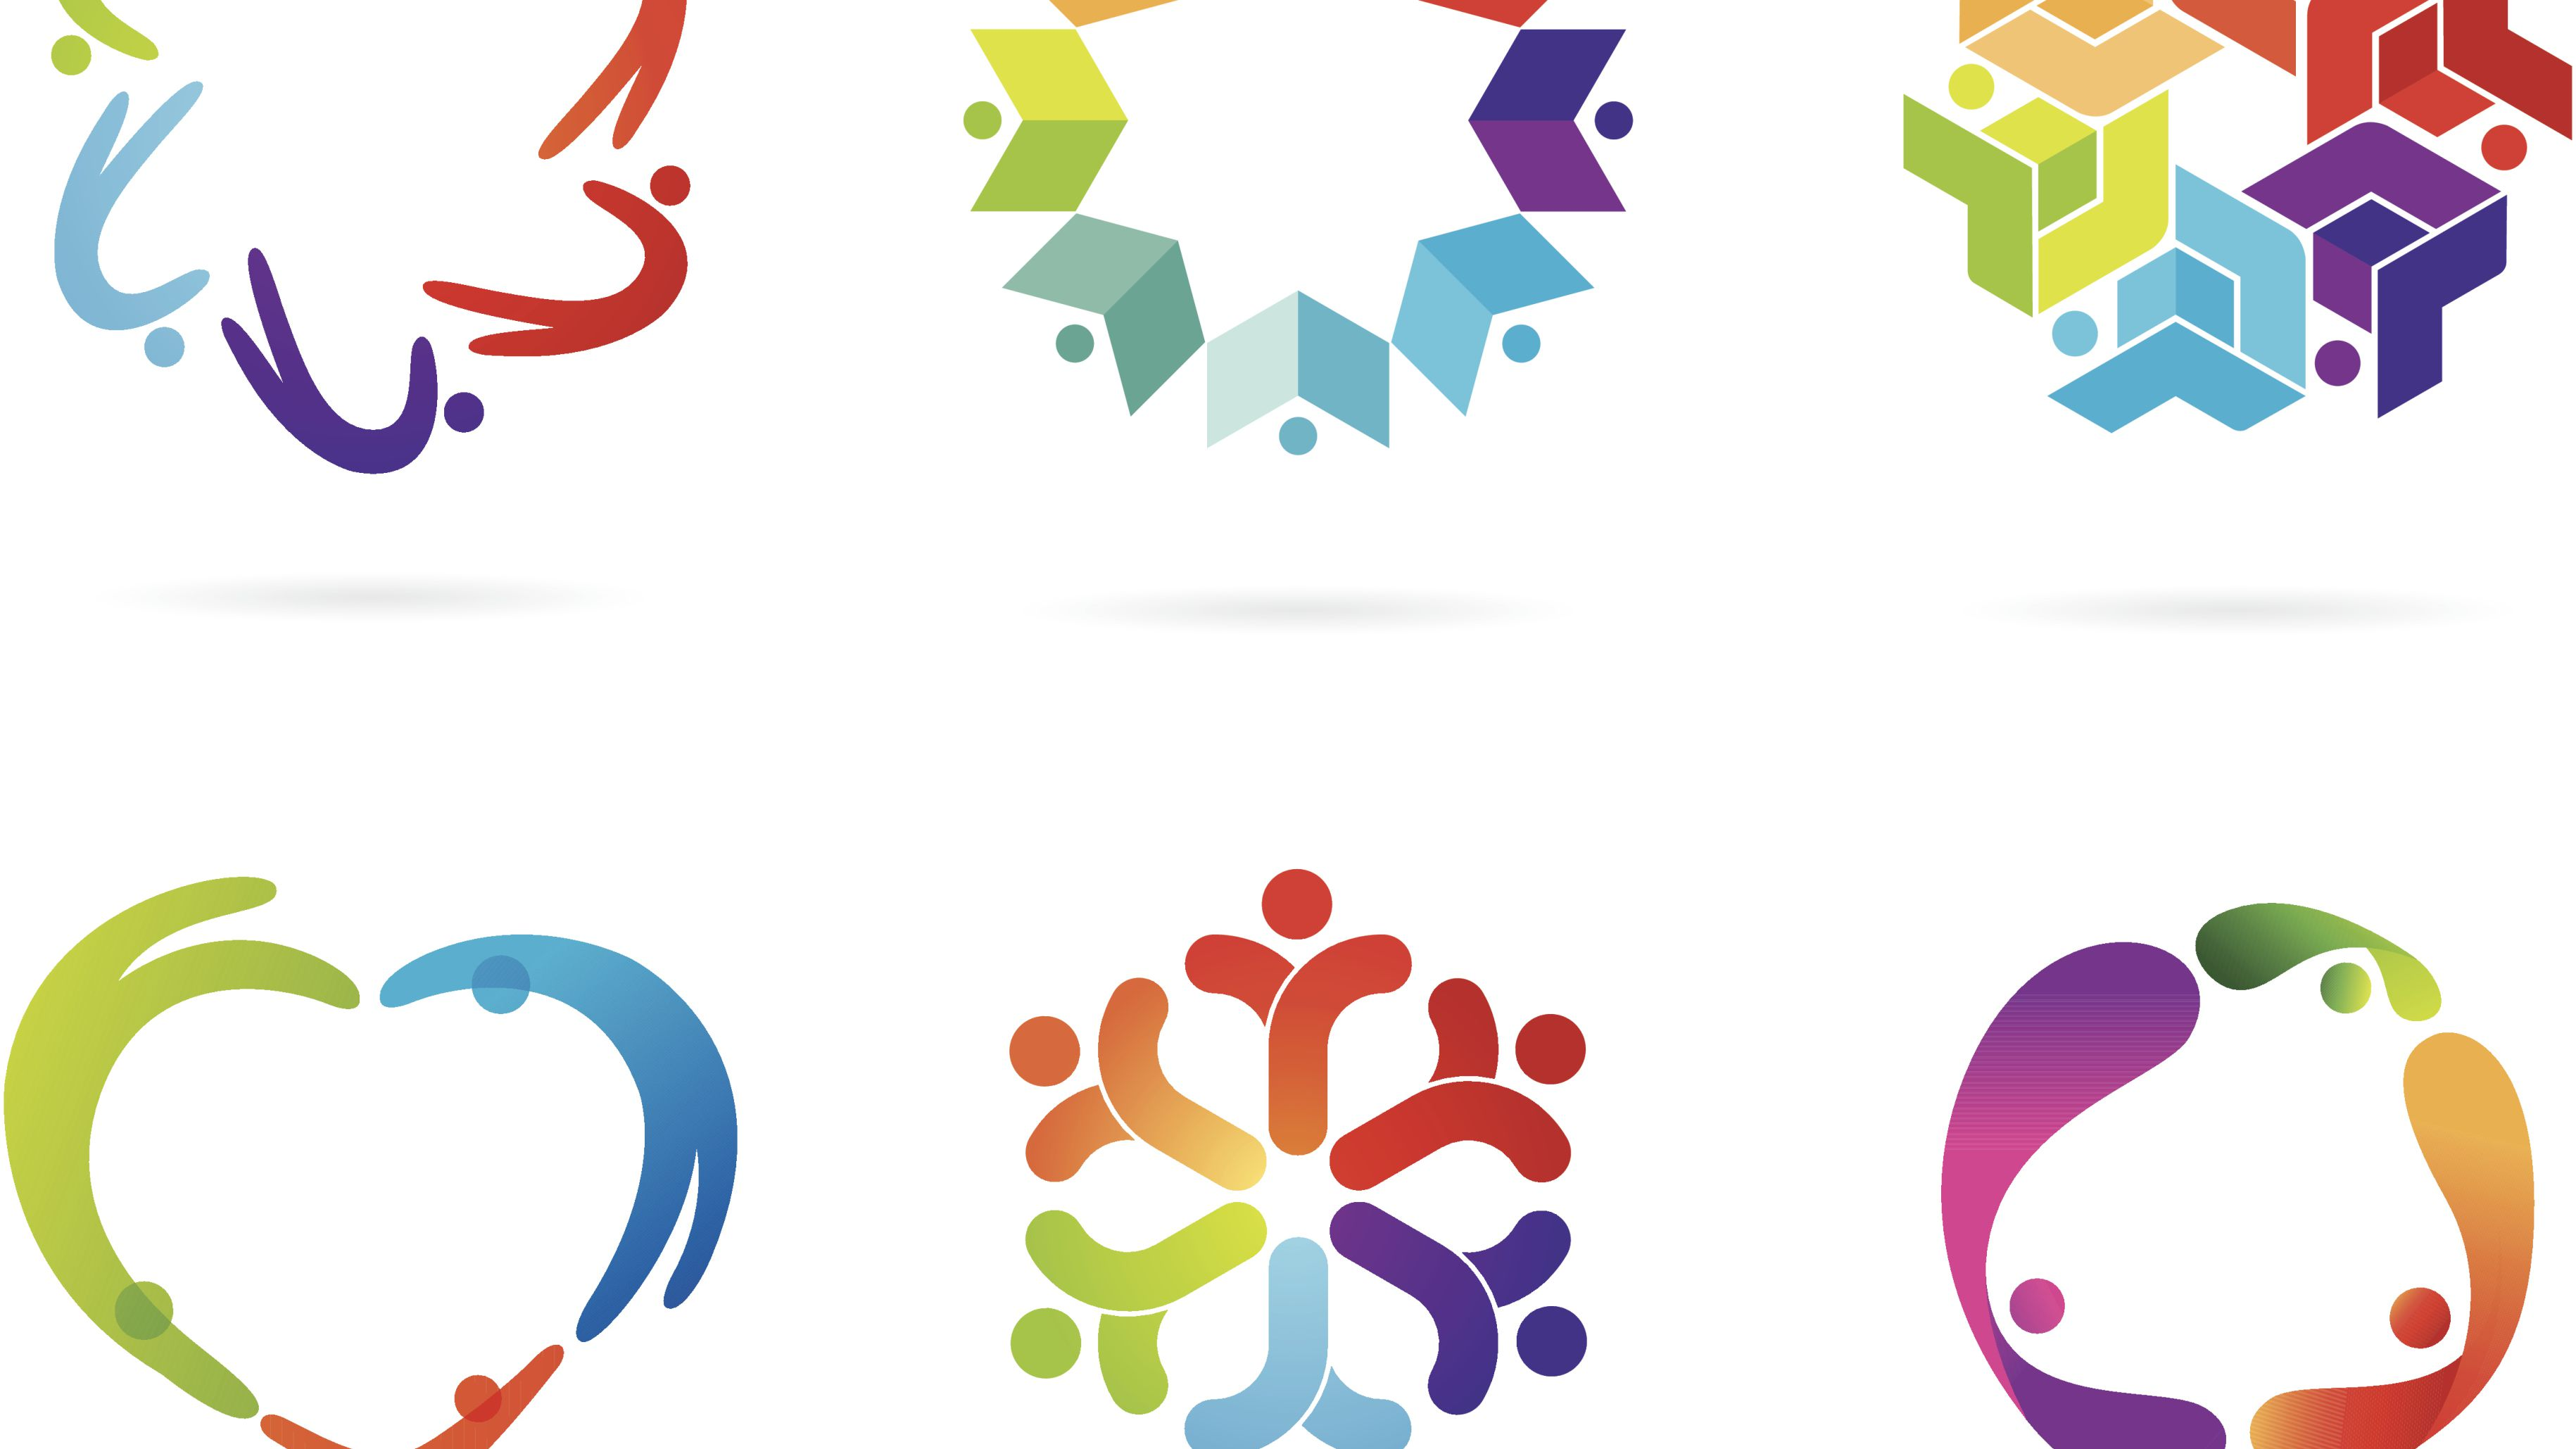 Creating A Business Logo With Good Feng Shui